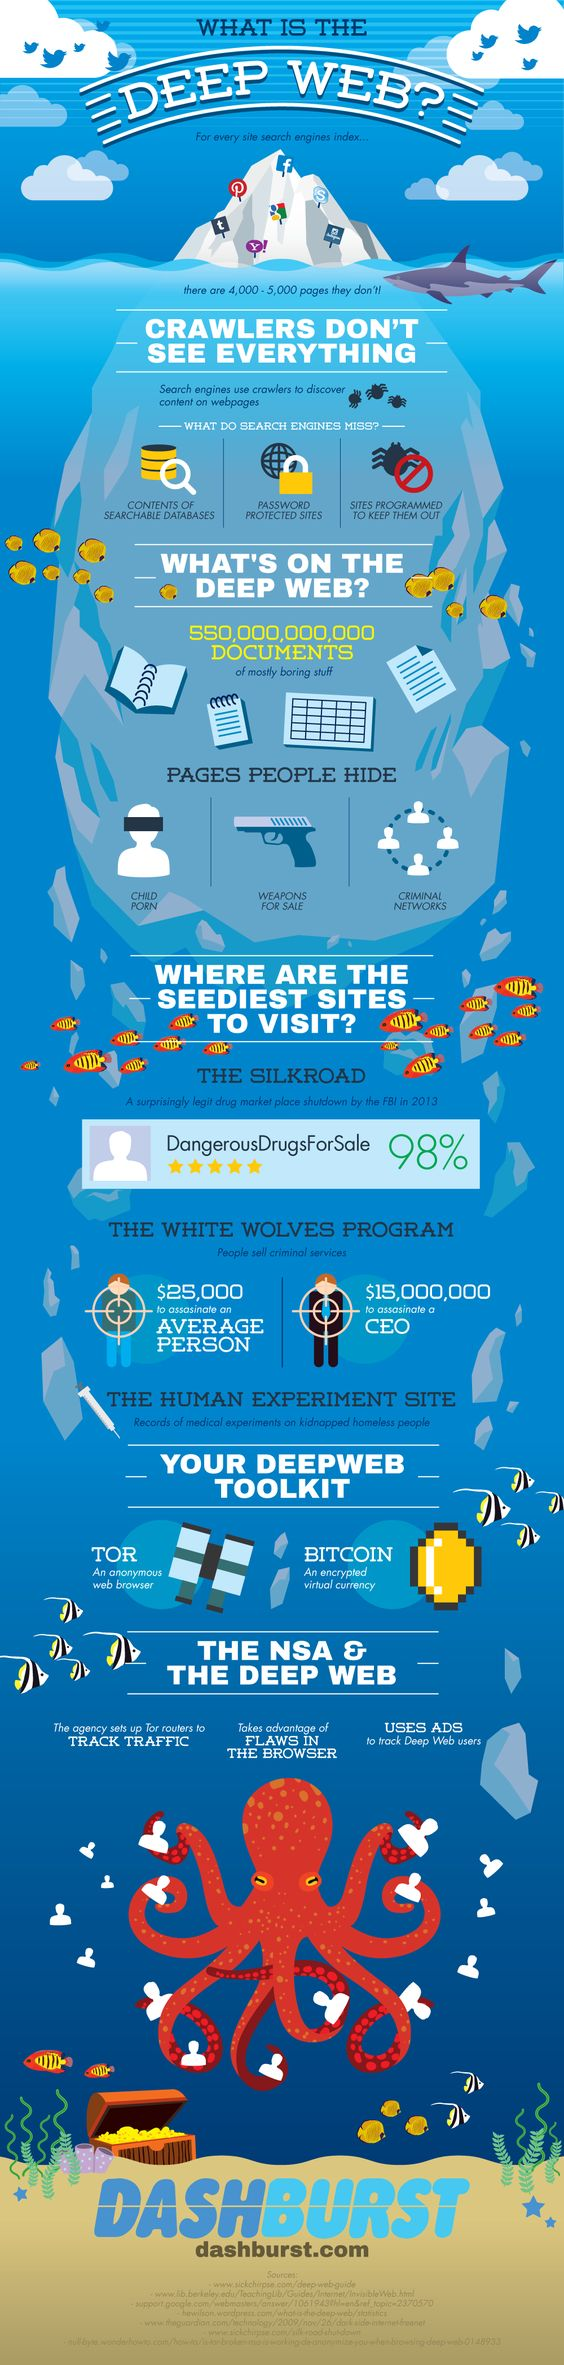 What is the Deep Web? Infographic